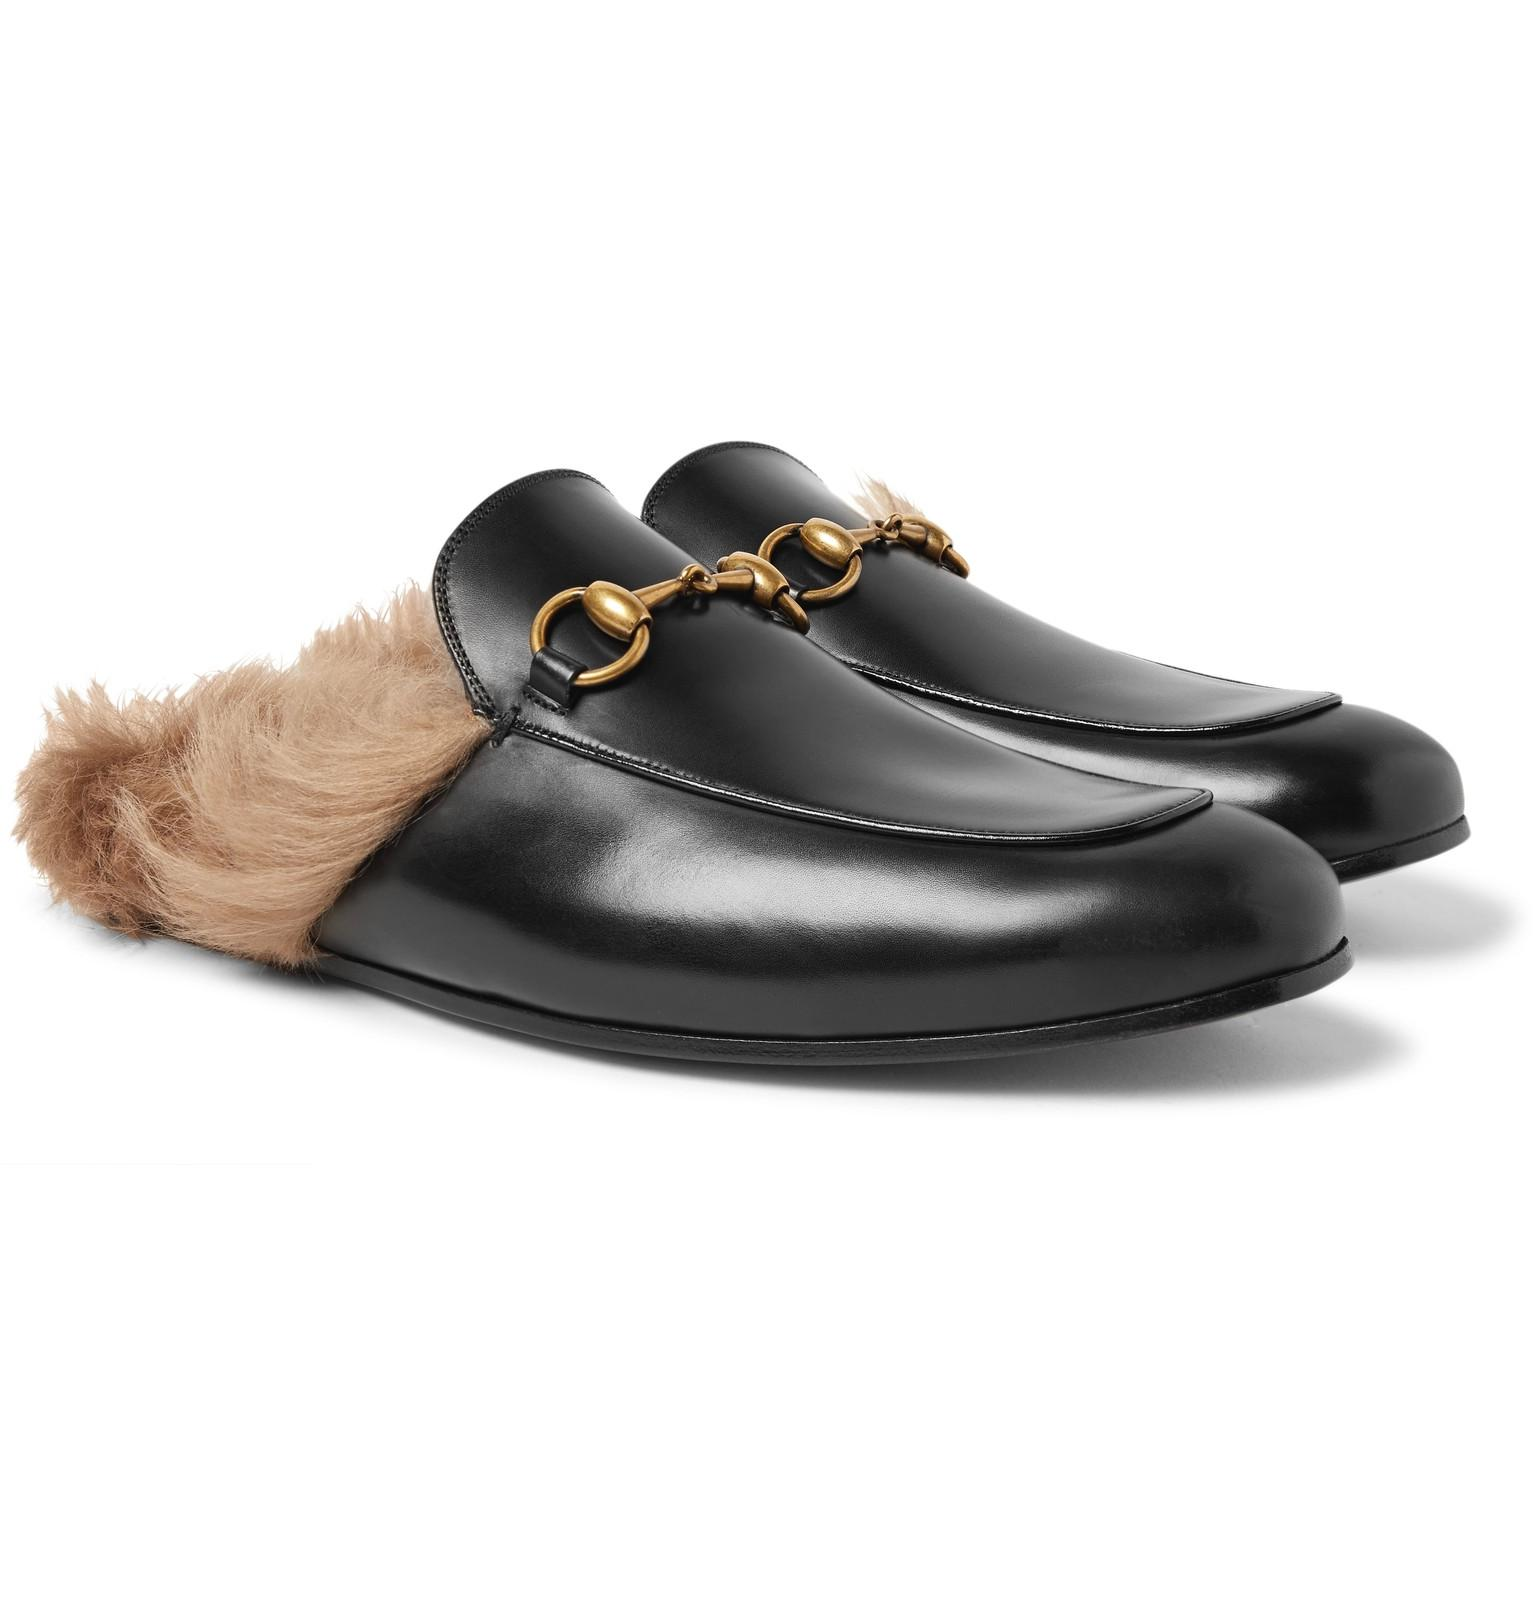 0ef104a7d Gucci. Men's Black Princetown Horsebit Shearling-lined Leather Backless  Loafers